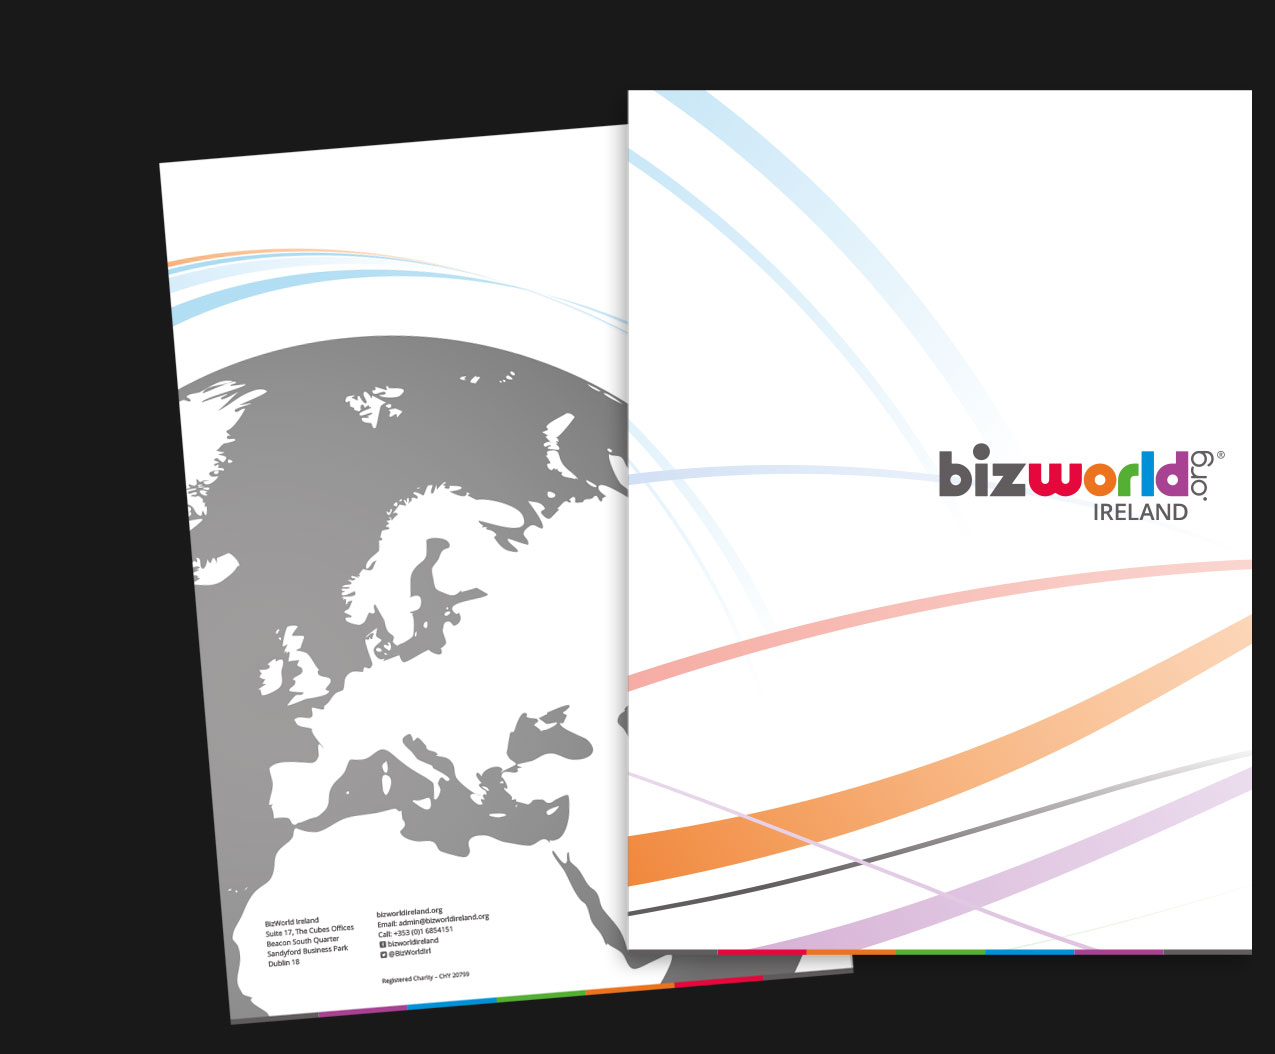 BizWorld Ireland website